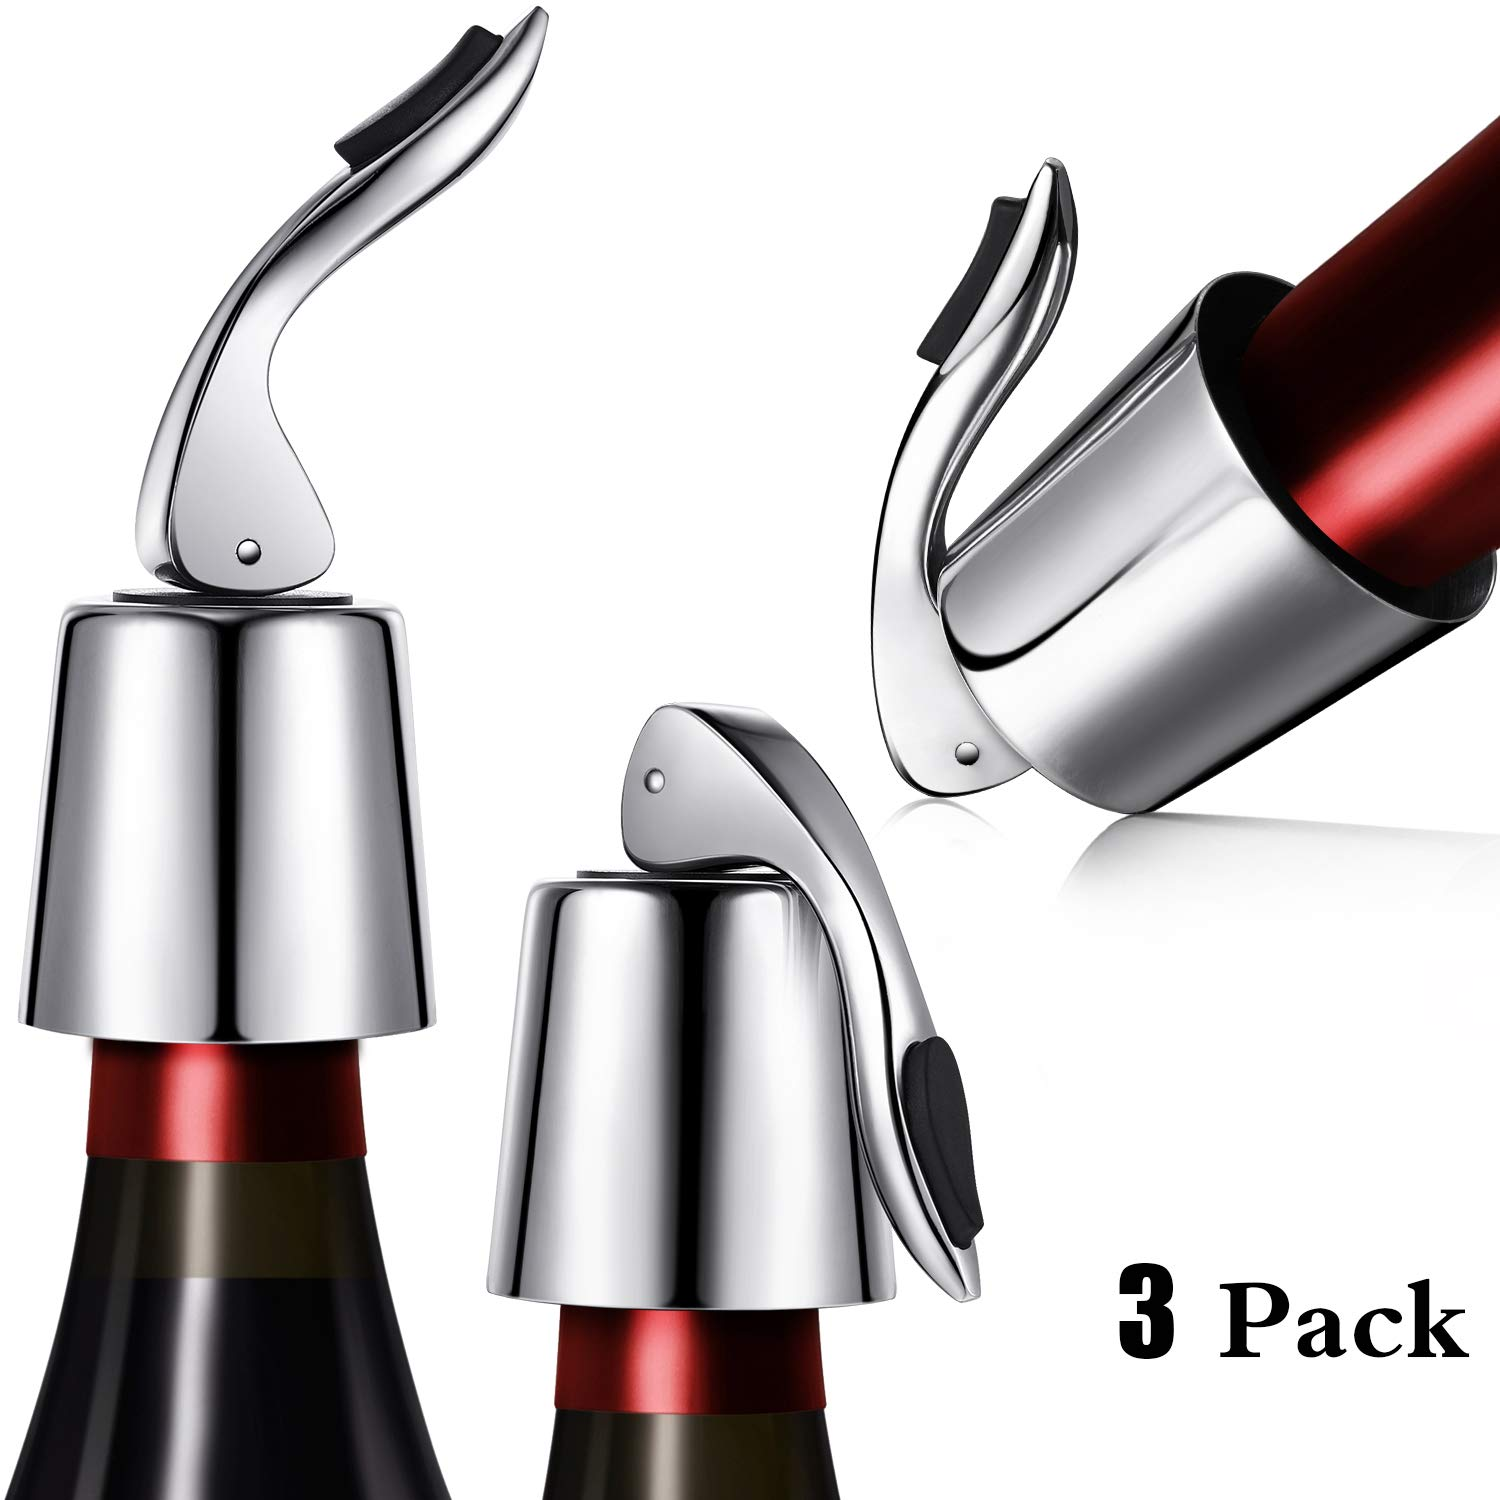 Stainless Steel Wine Stoppers Bottle Stoppers Vacuum Bottle Sealer Bottle Plug with Inner Rubber 1.6 x 3.7 inches (3 Pack)